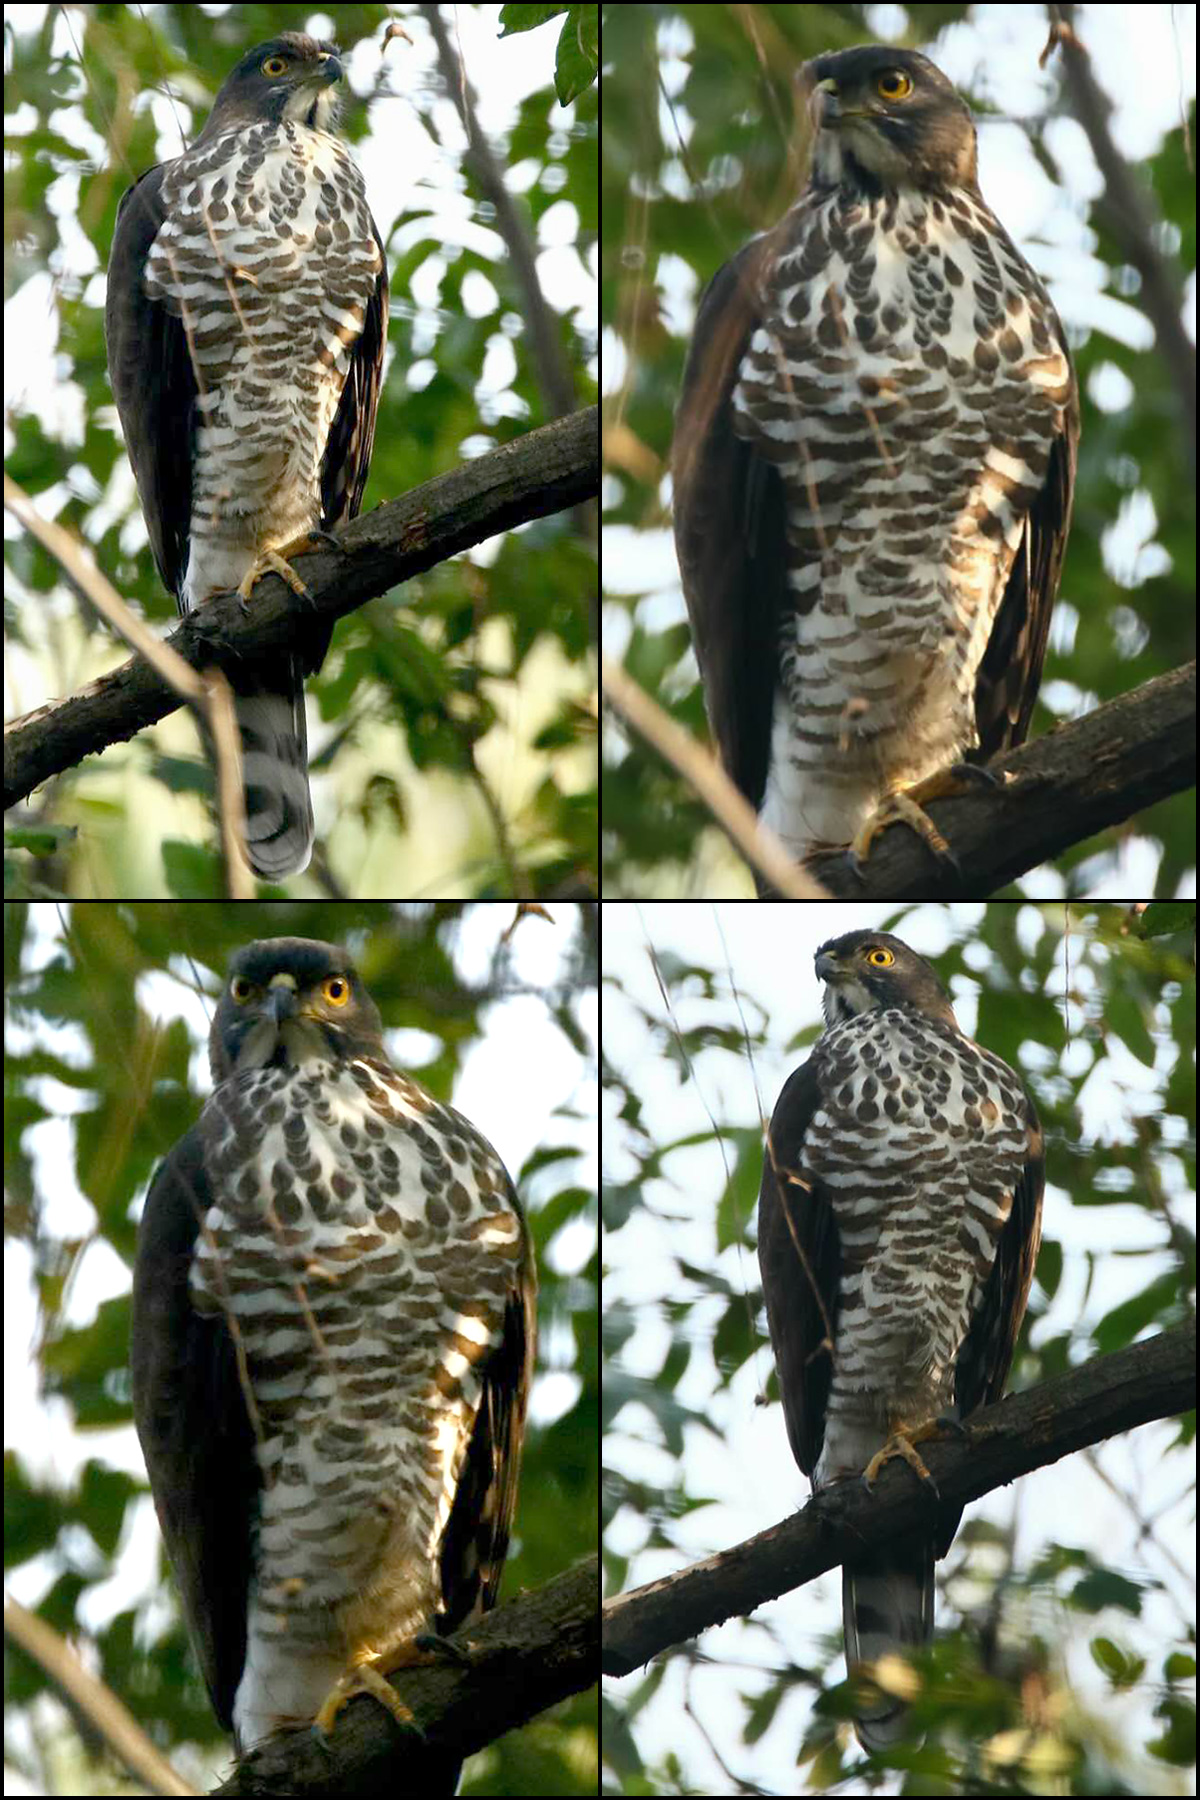 In December 2016 this Crested Goshawk made a very rare appearance in Zhongshan Park, Shanghai. Photo by Wāng Jìn Róng (汪进荣).